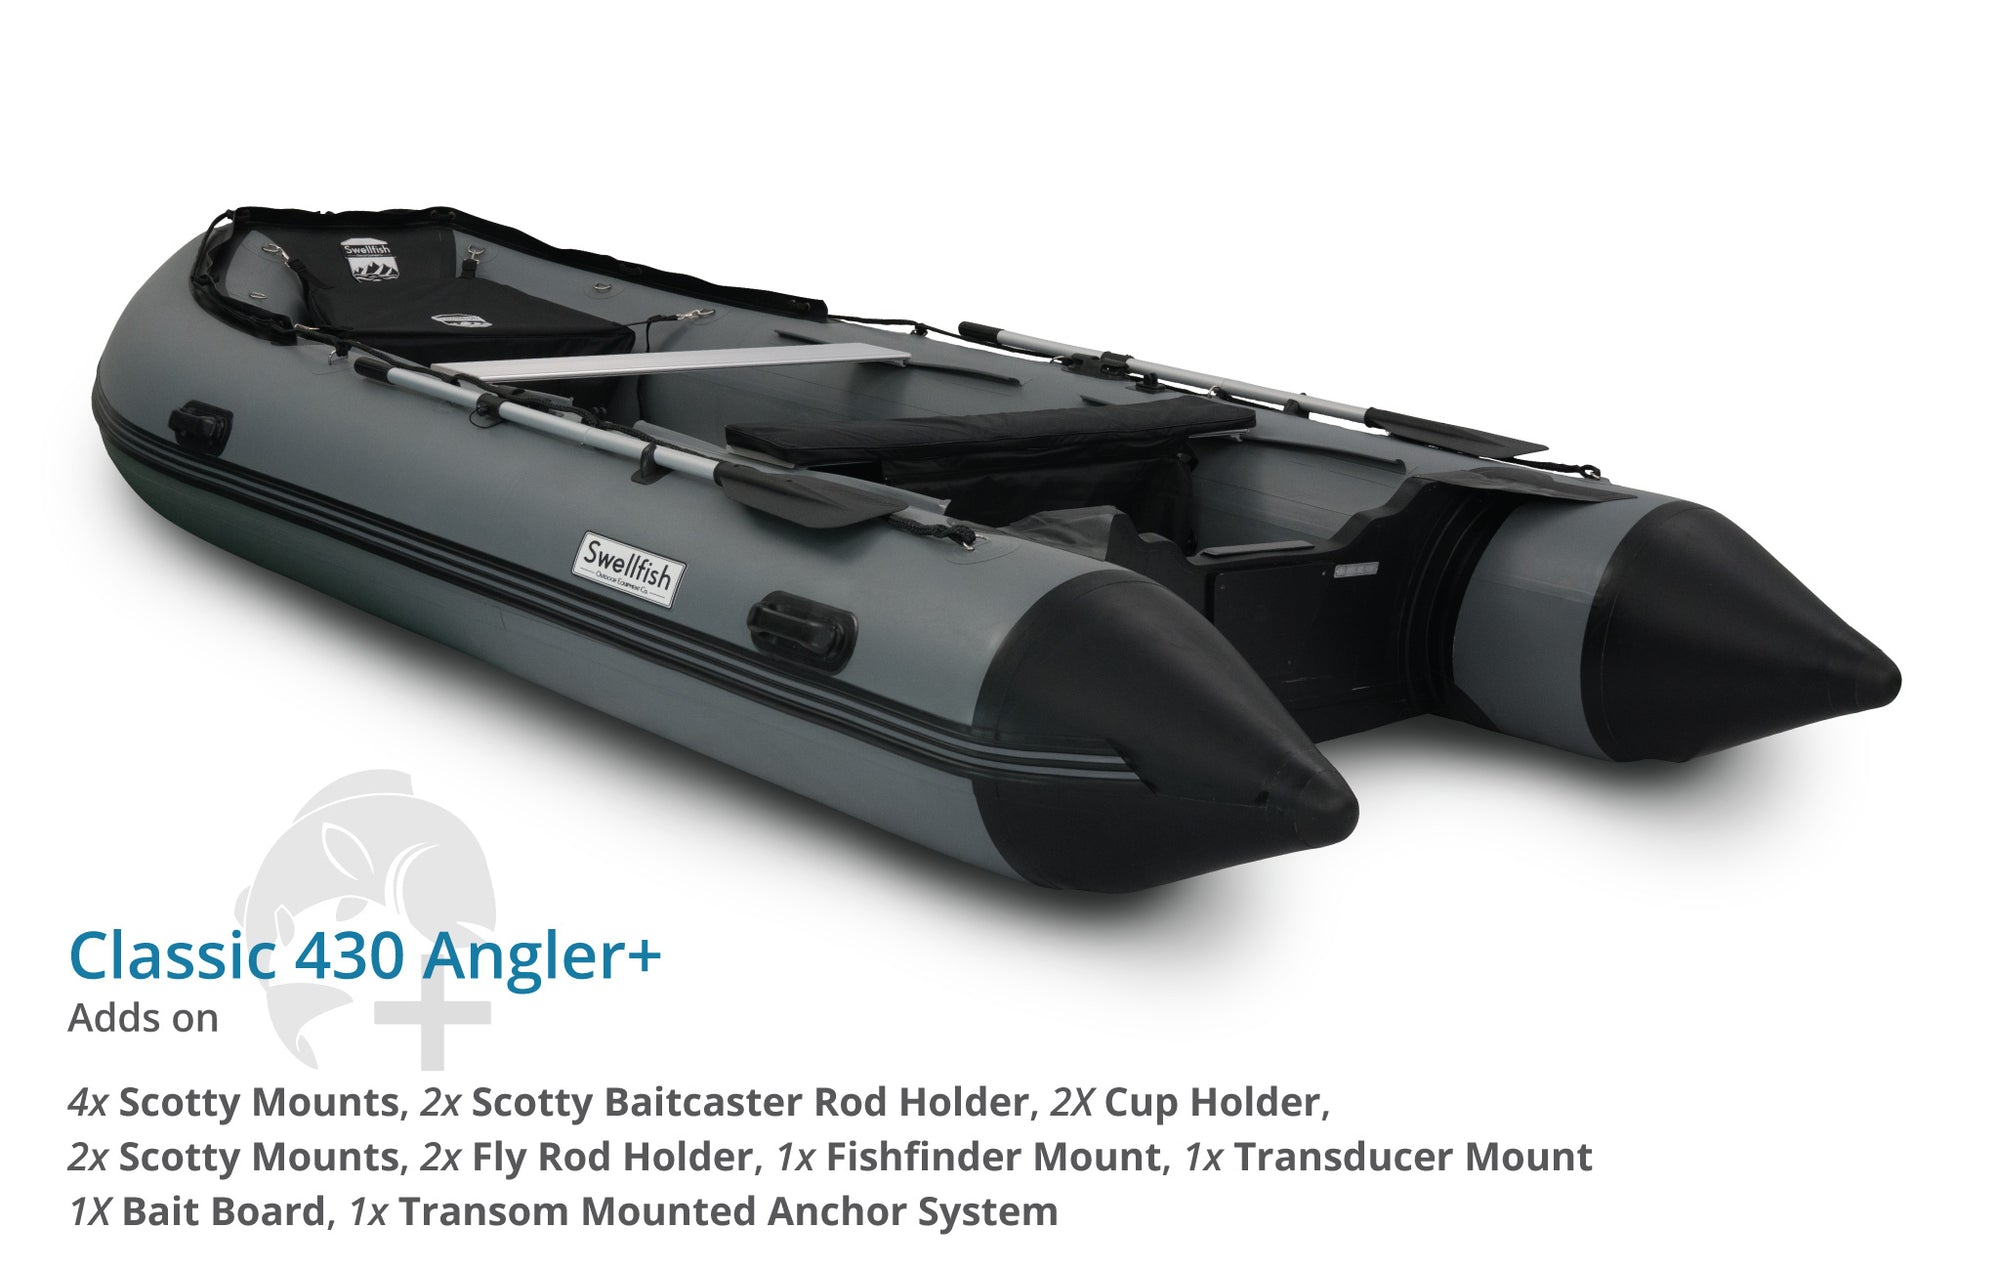 Classic Inflatable Boat